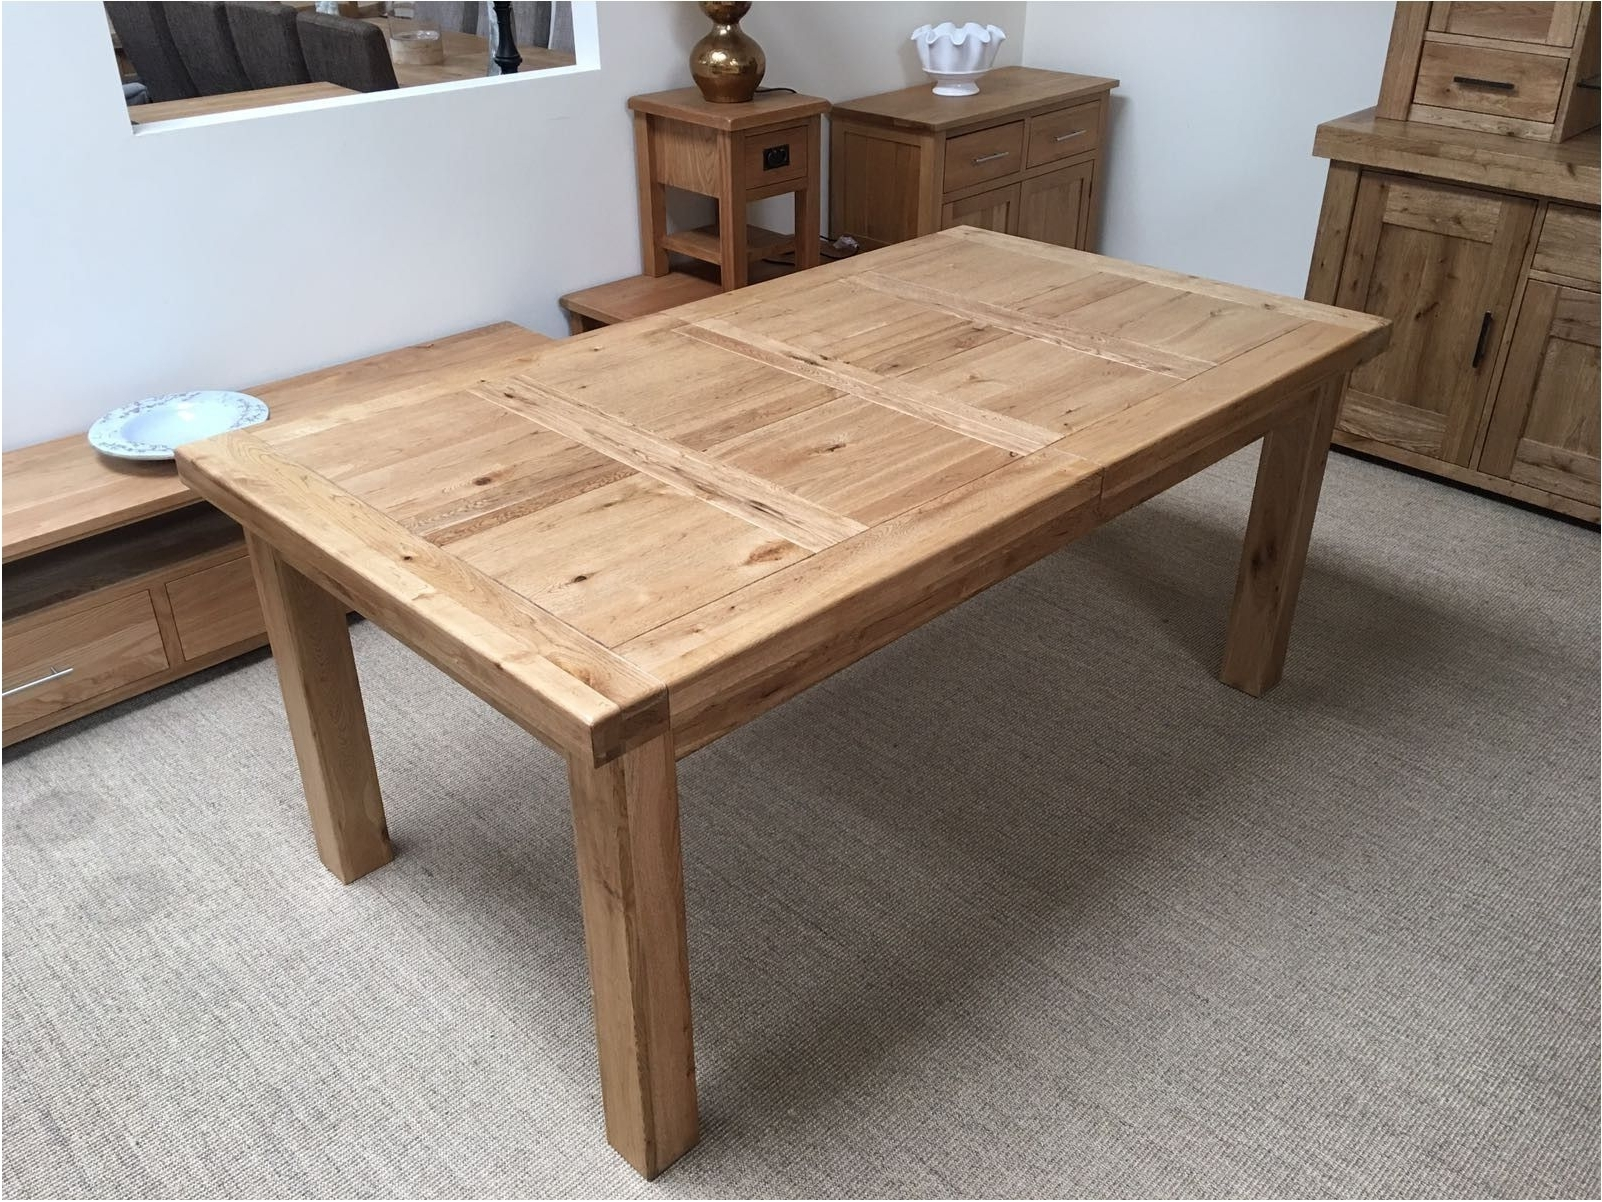 Astounding Oxford Solid Oak Extending Dining Table Oak Furniture With Regard To Fashionable Round Oak Extendable Dining Tables And Chairs (View 25 of 25)